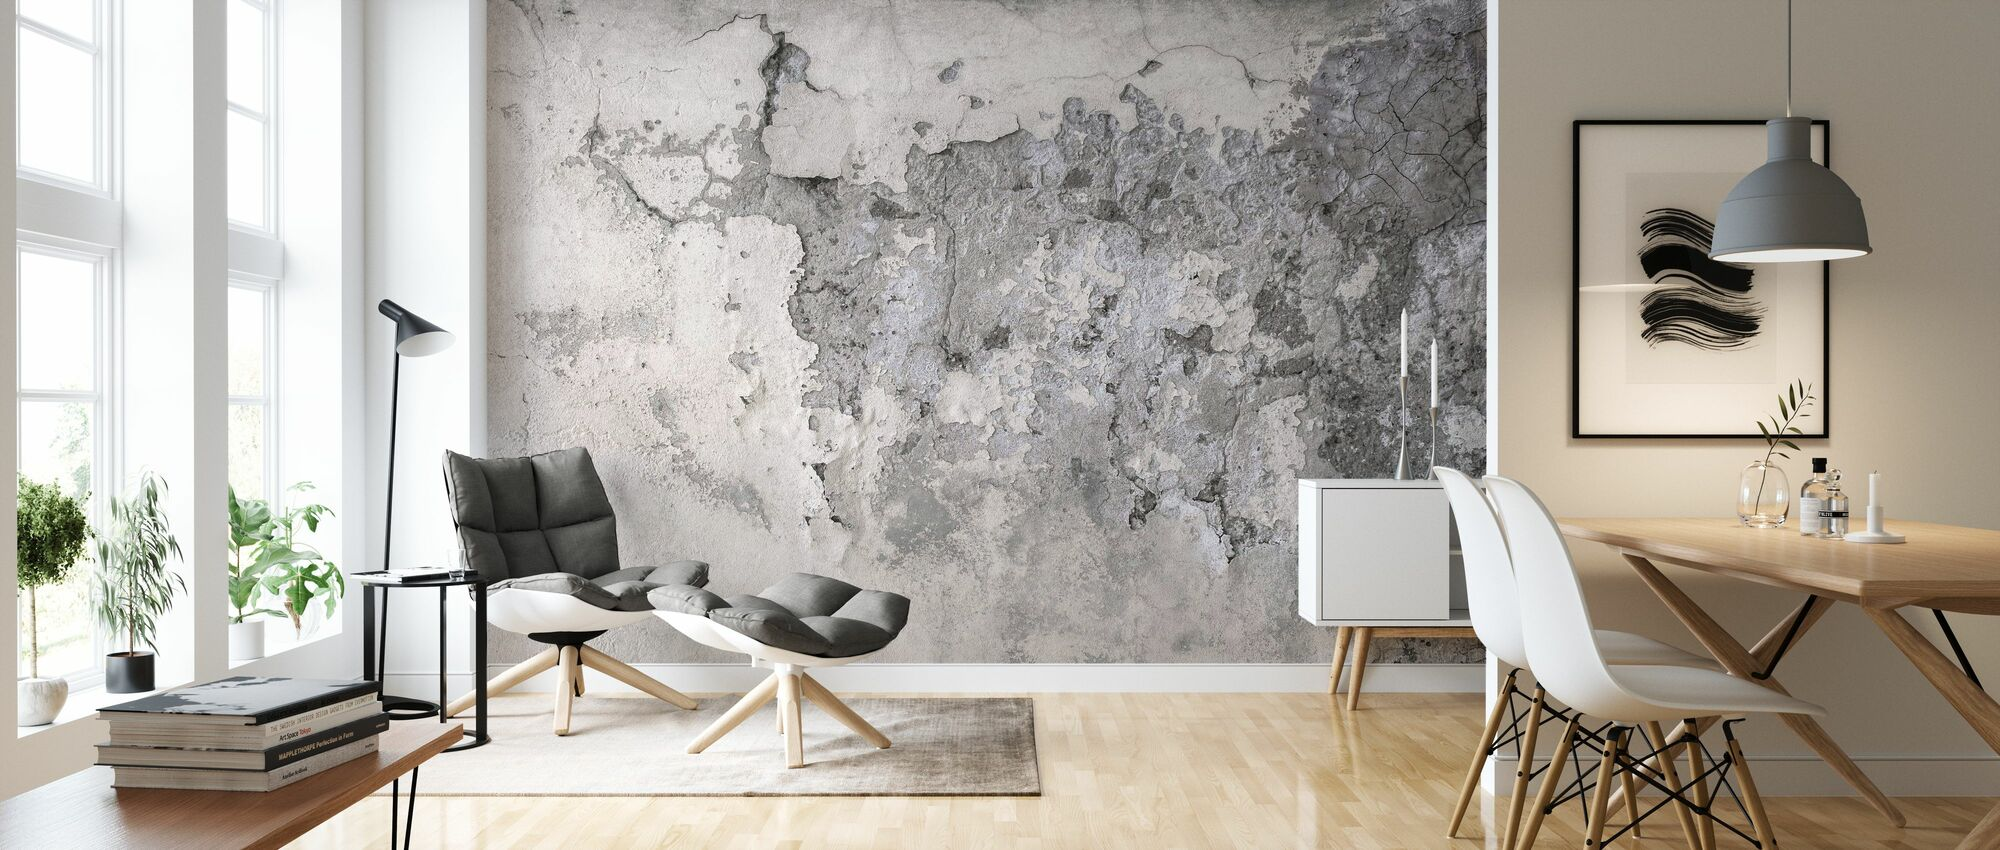 Old Cracked Wall - Wallpaper - Living Room